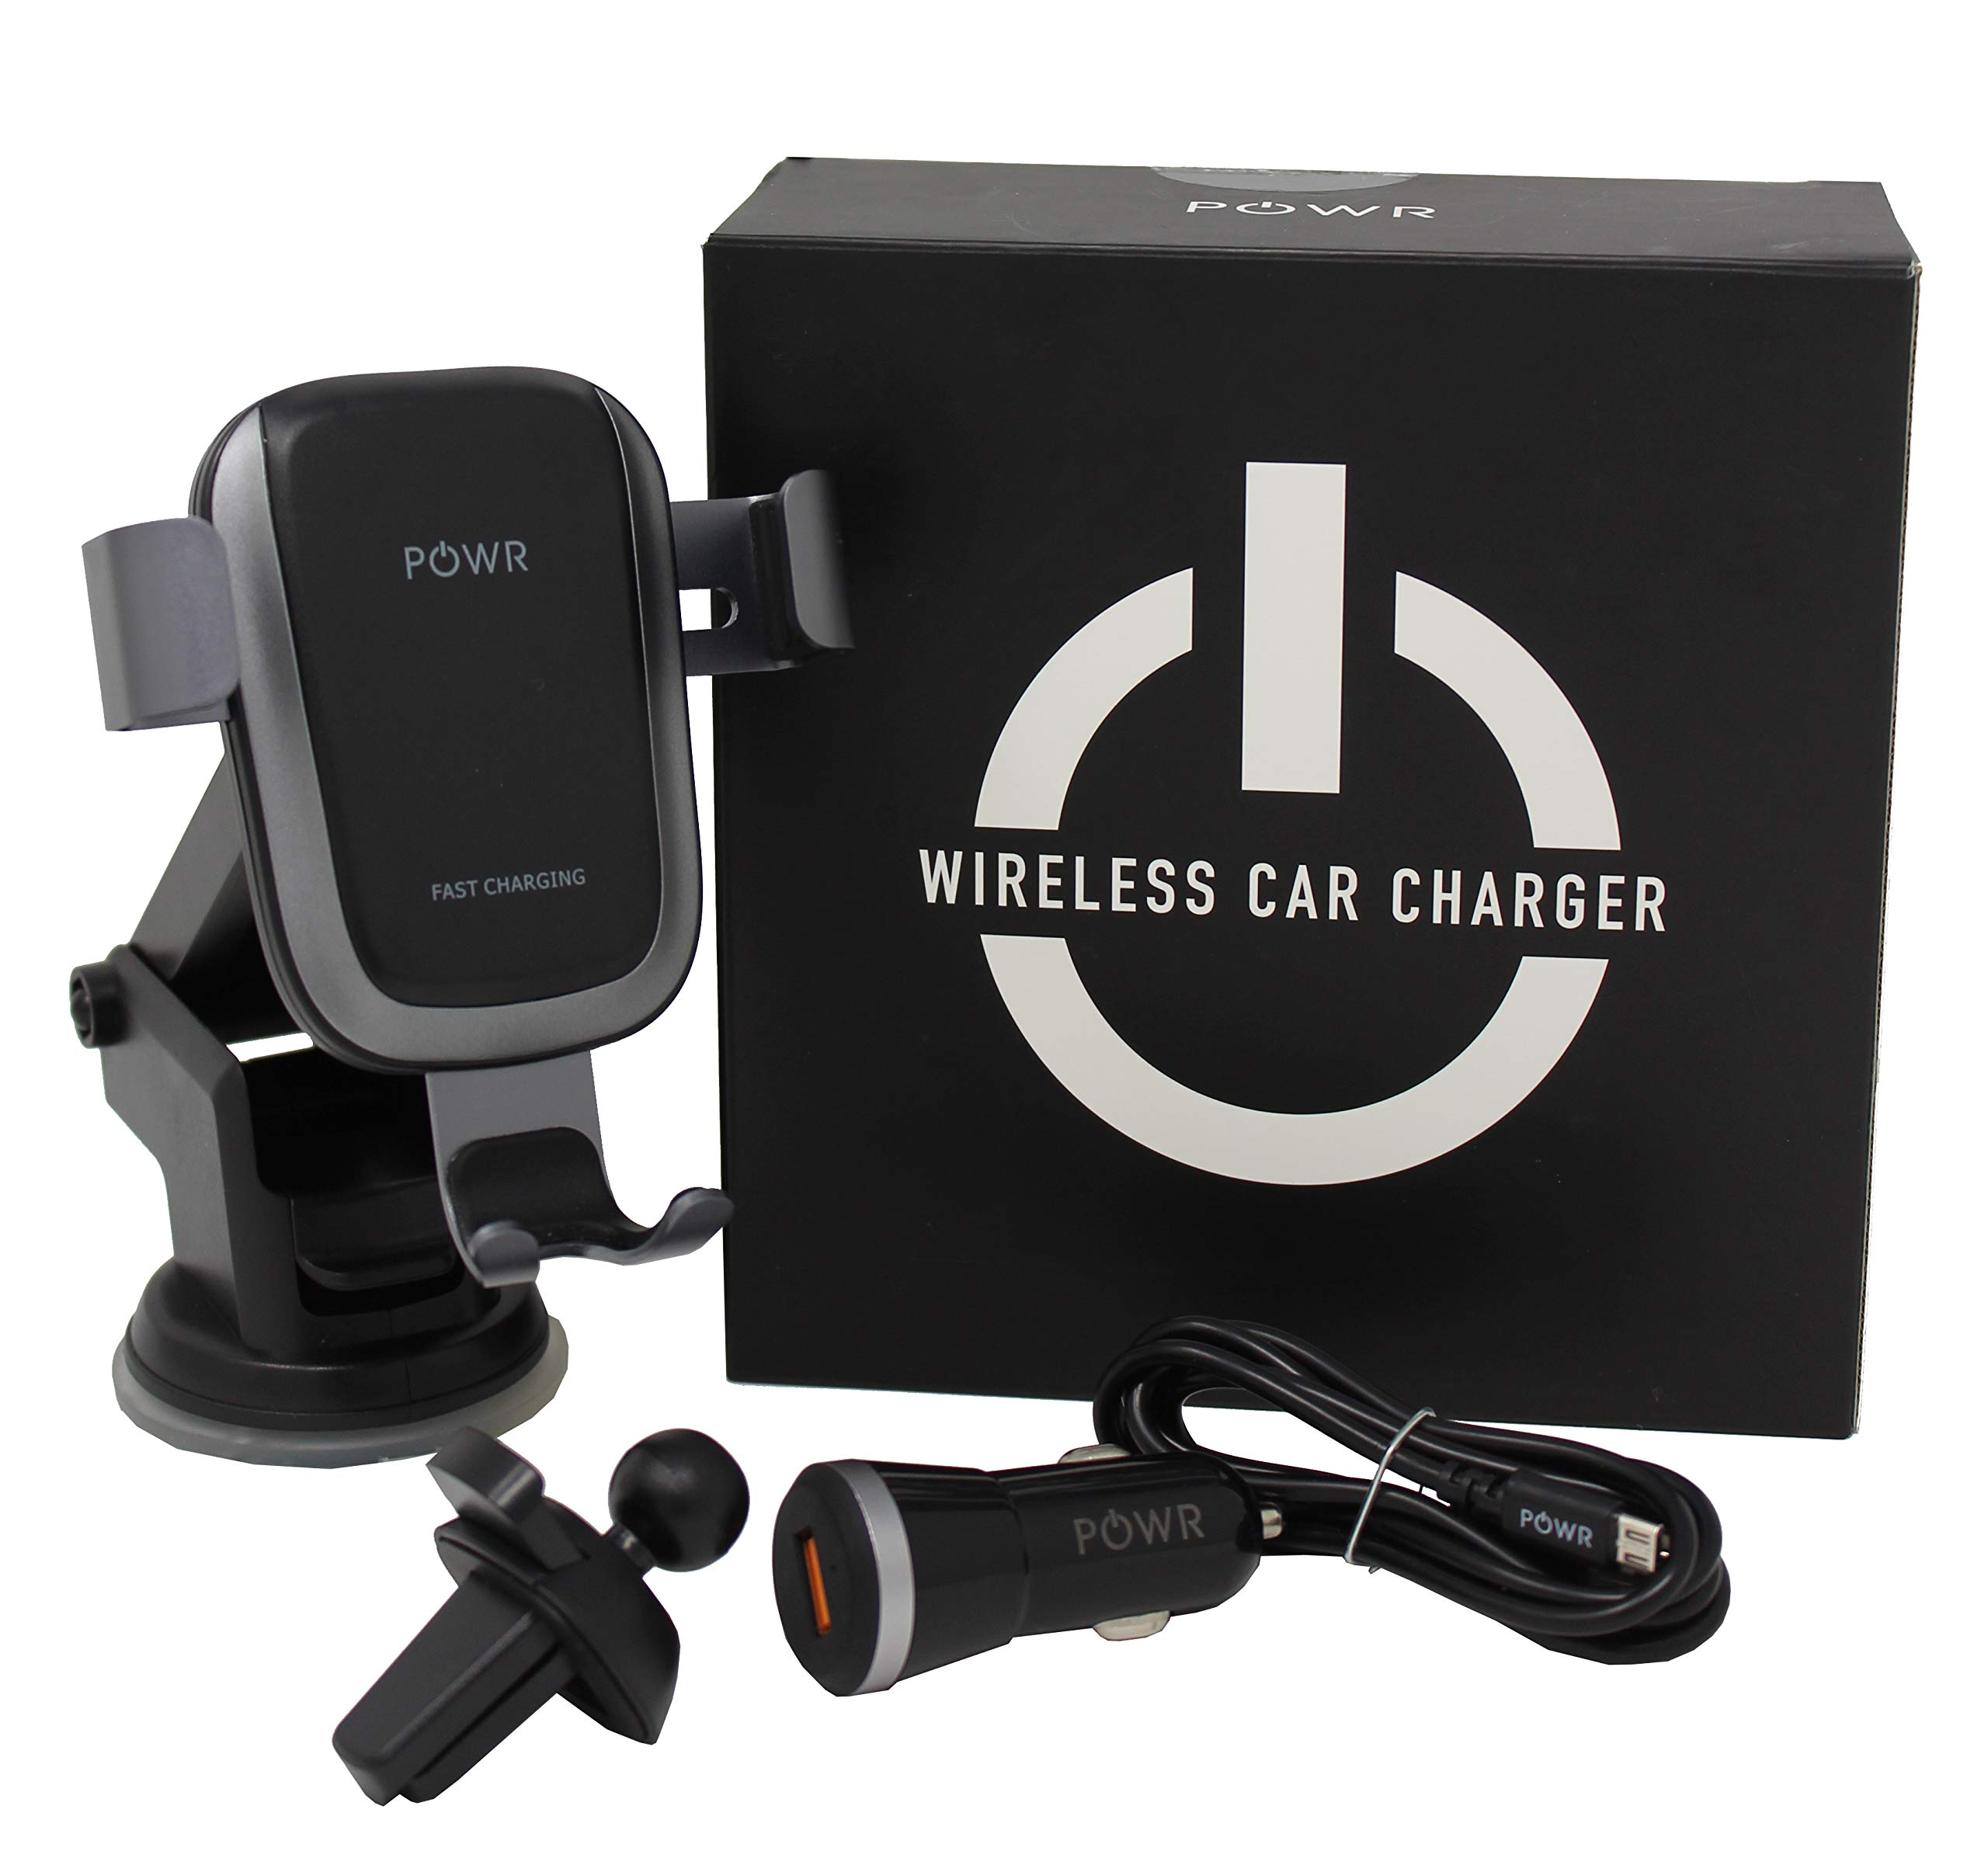 POWR Fast Wireless Car Charger | Fast Charging Station + Vent & Windshield/Dash Mounts for Samsung Galaxy S10/S10+/S9/S9+/S8/S8+/S7 Edge, Note 9/8, Apple iPhone XSMax/XR/XS/X/8+ & More! by POWR